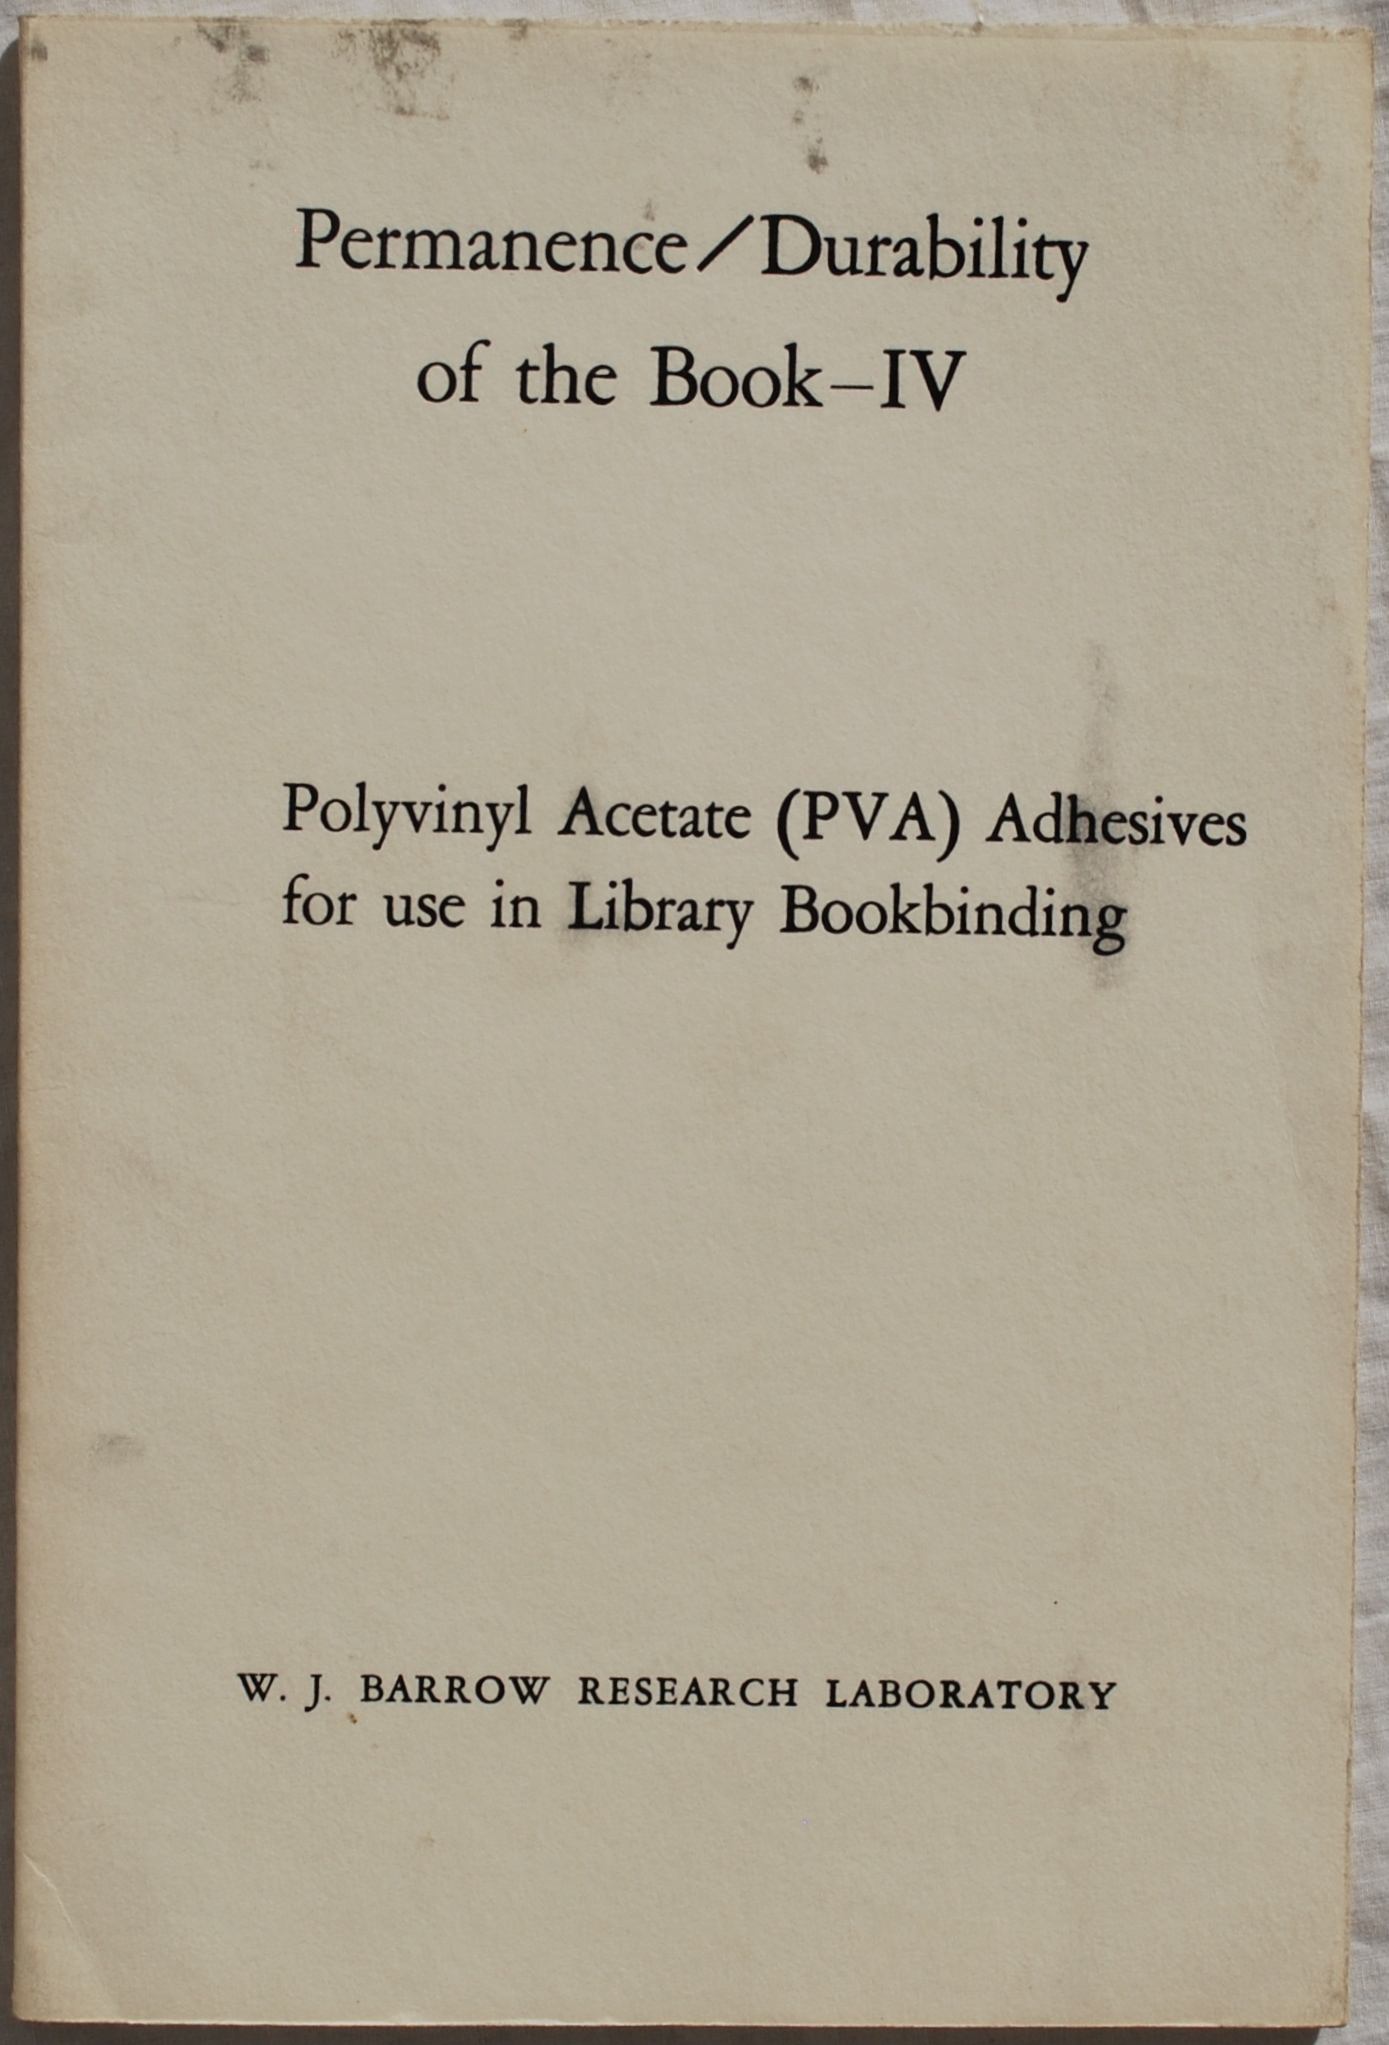 Image for Permanence/Durability of the Book - IV: Polyvinyl Acetate (PVA) Adhesives For Use In Library Bookbinding.